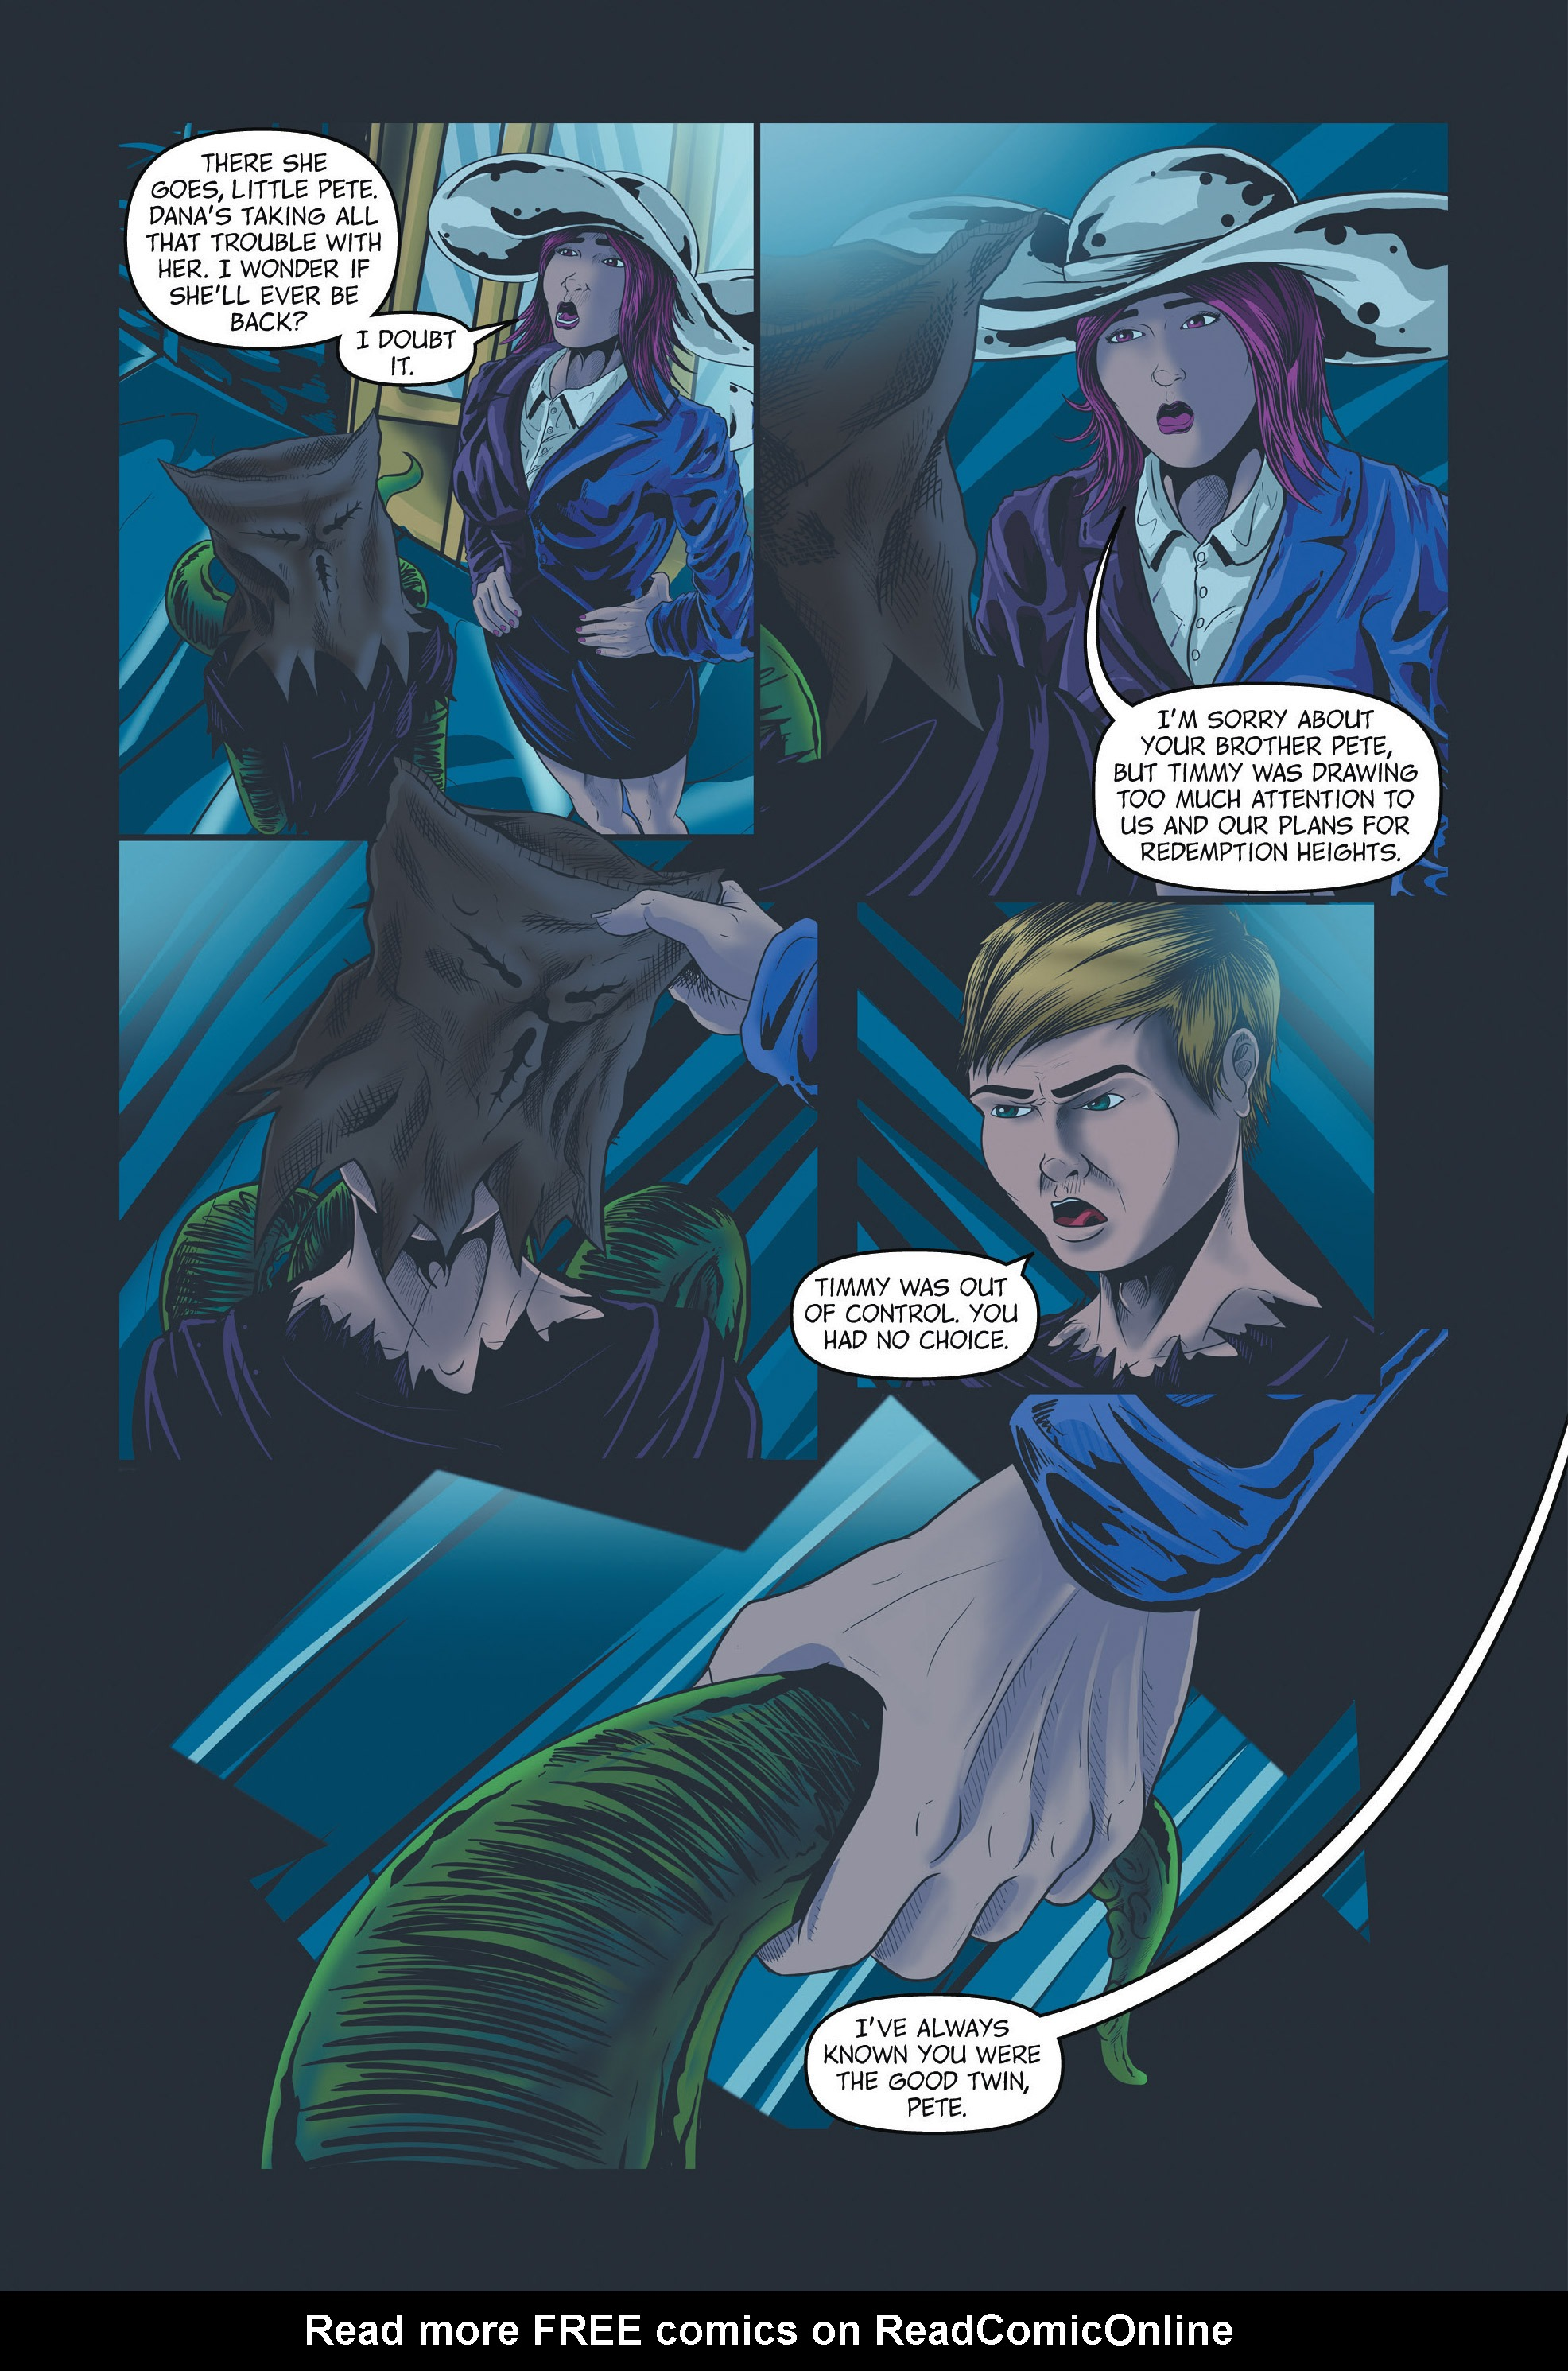 Read online Redemption Heights comic -  Issue # Full - 79